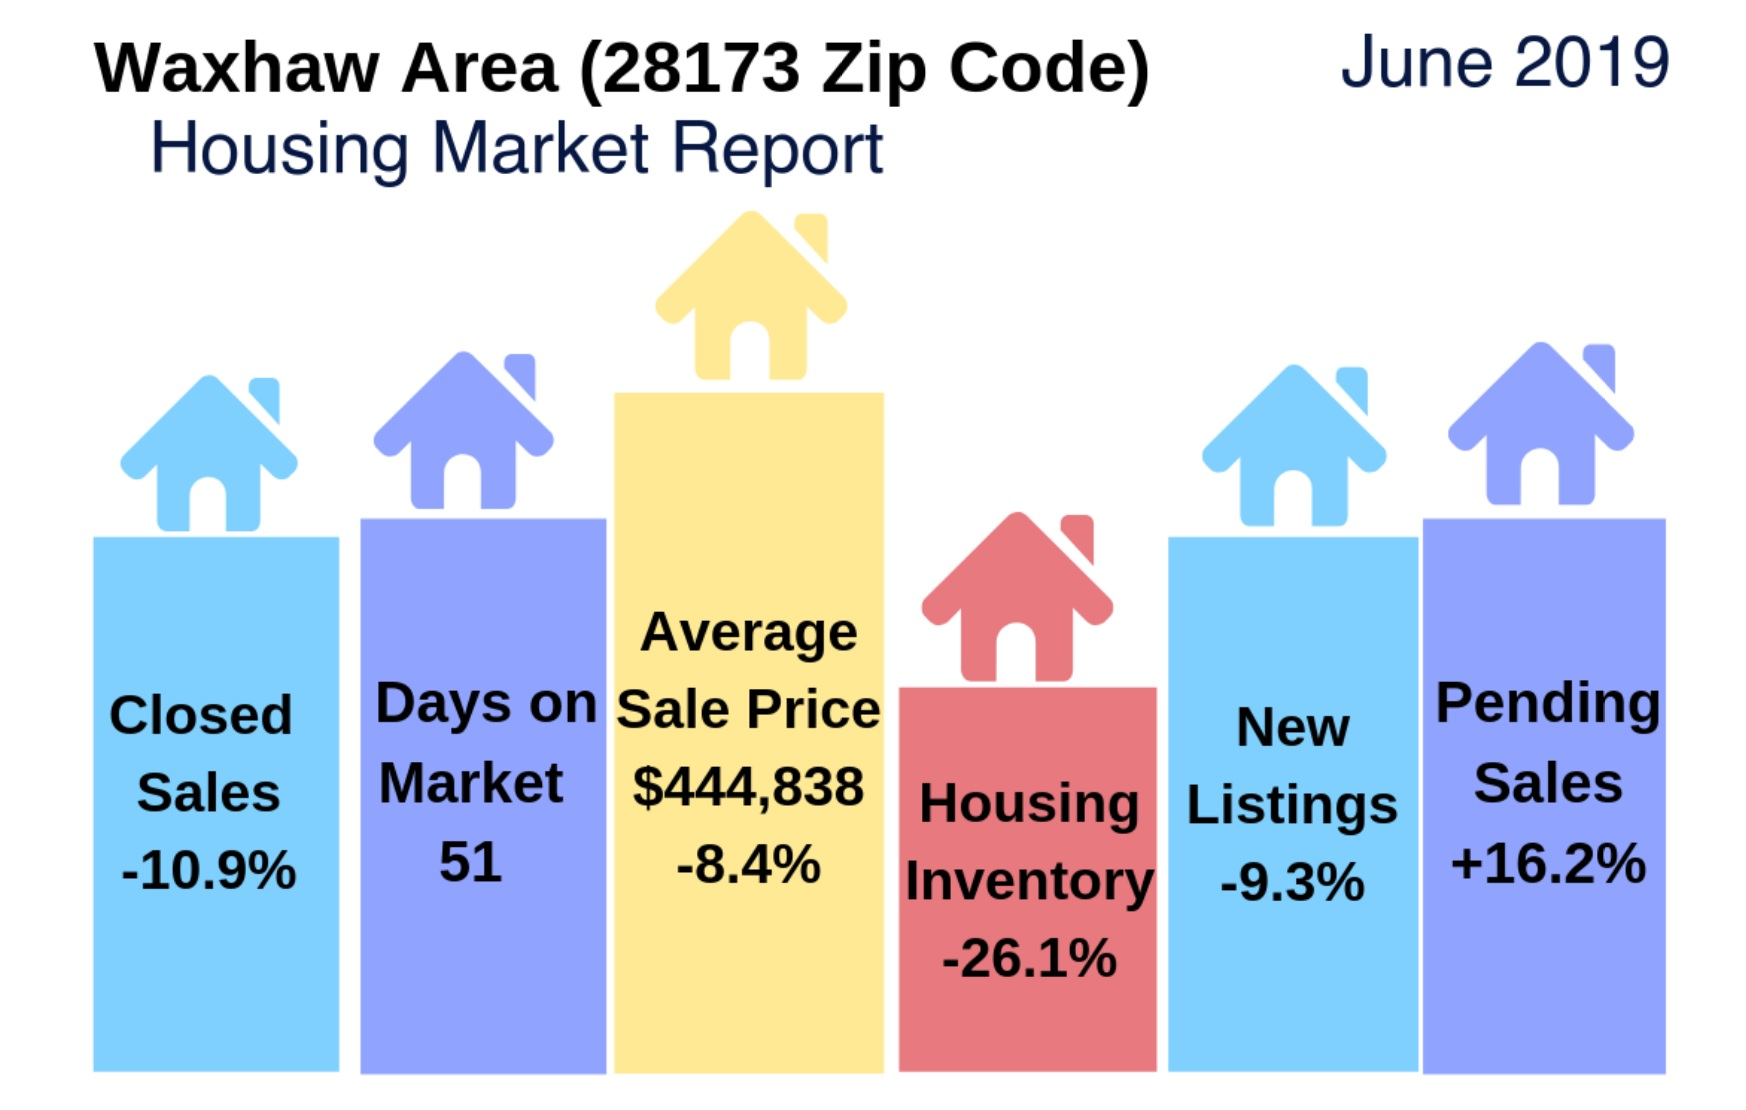 Waxhaw Area (28173 Zip Code) Housing Market Update & Video: June 2019